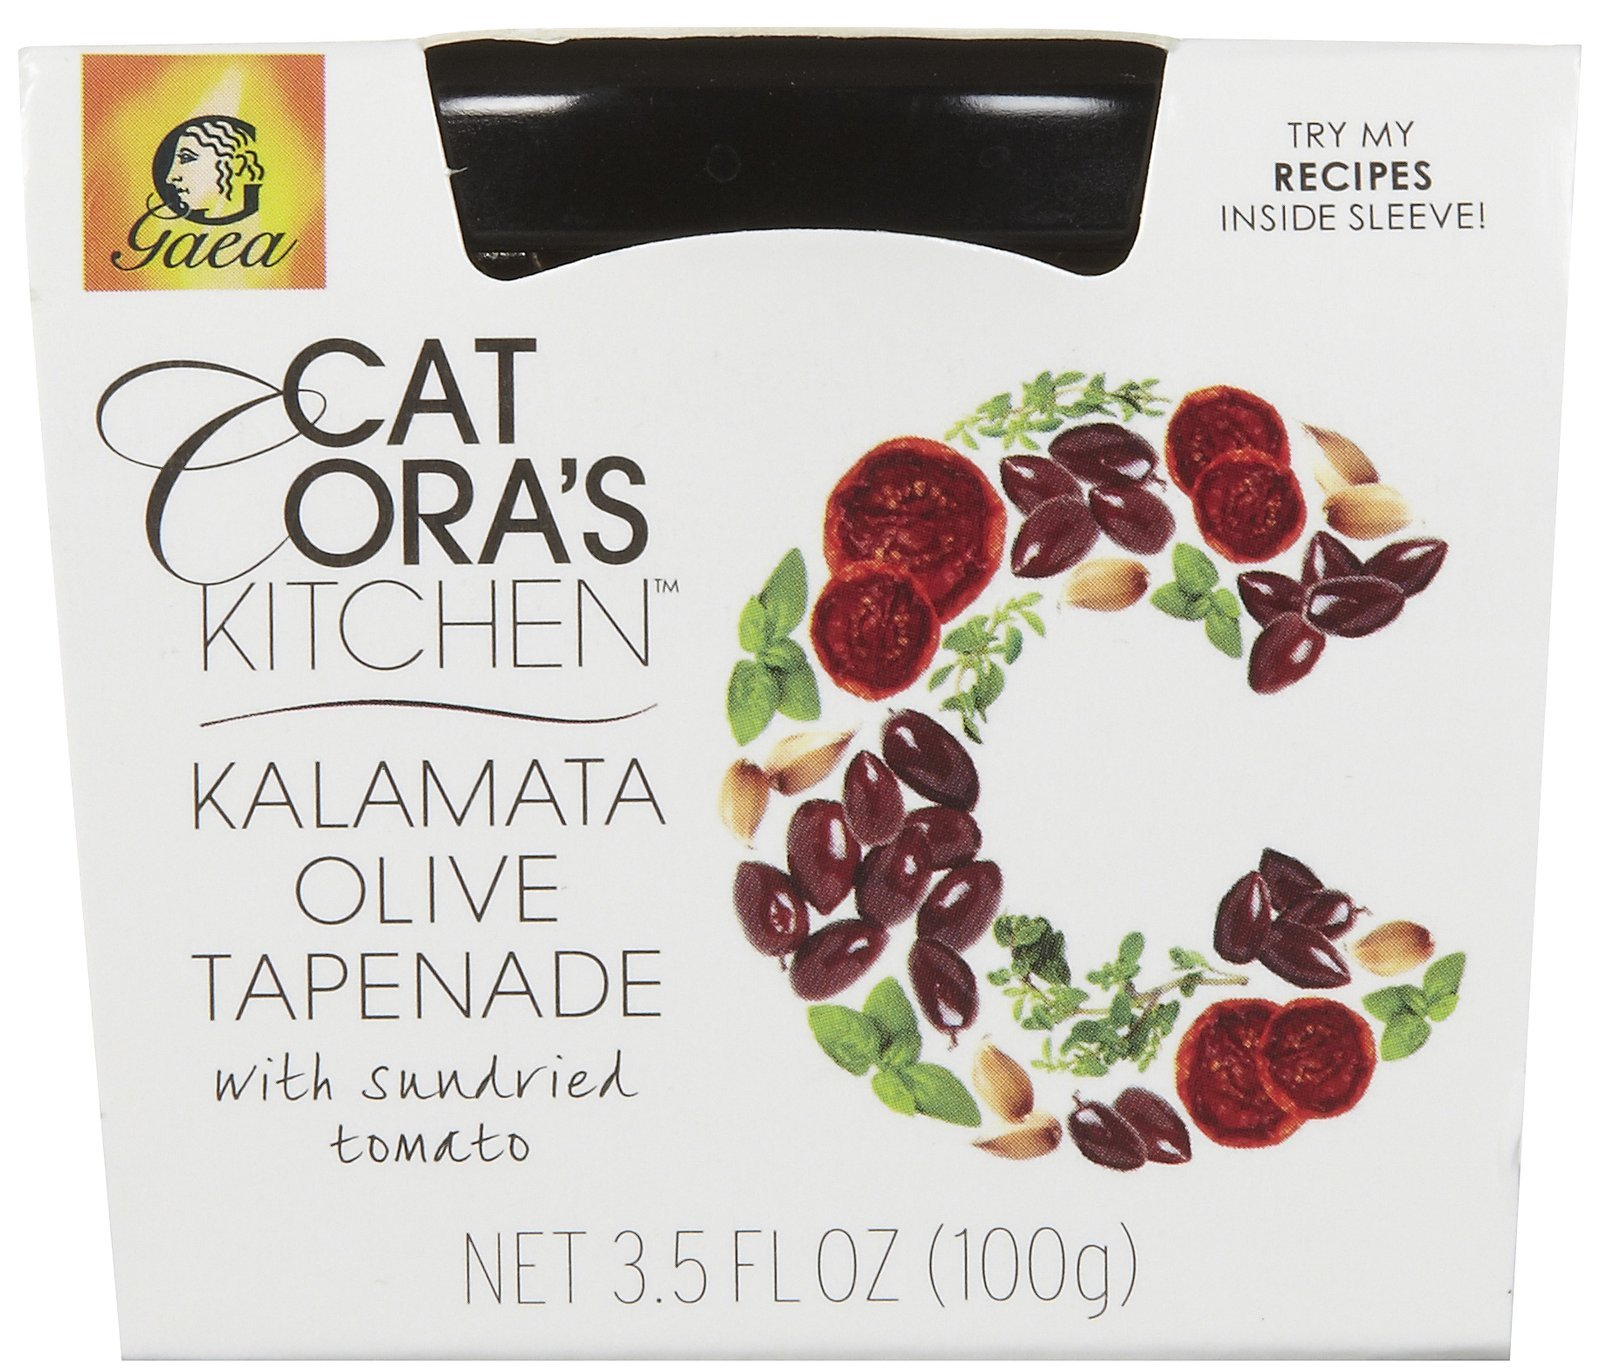 Gaea Cat Cora's Kitchen Kalamata Olive Tapenade, 3.5 oz Jars, 6 pk